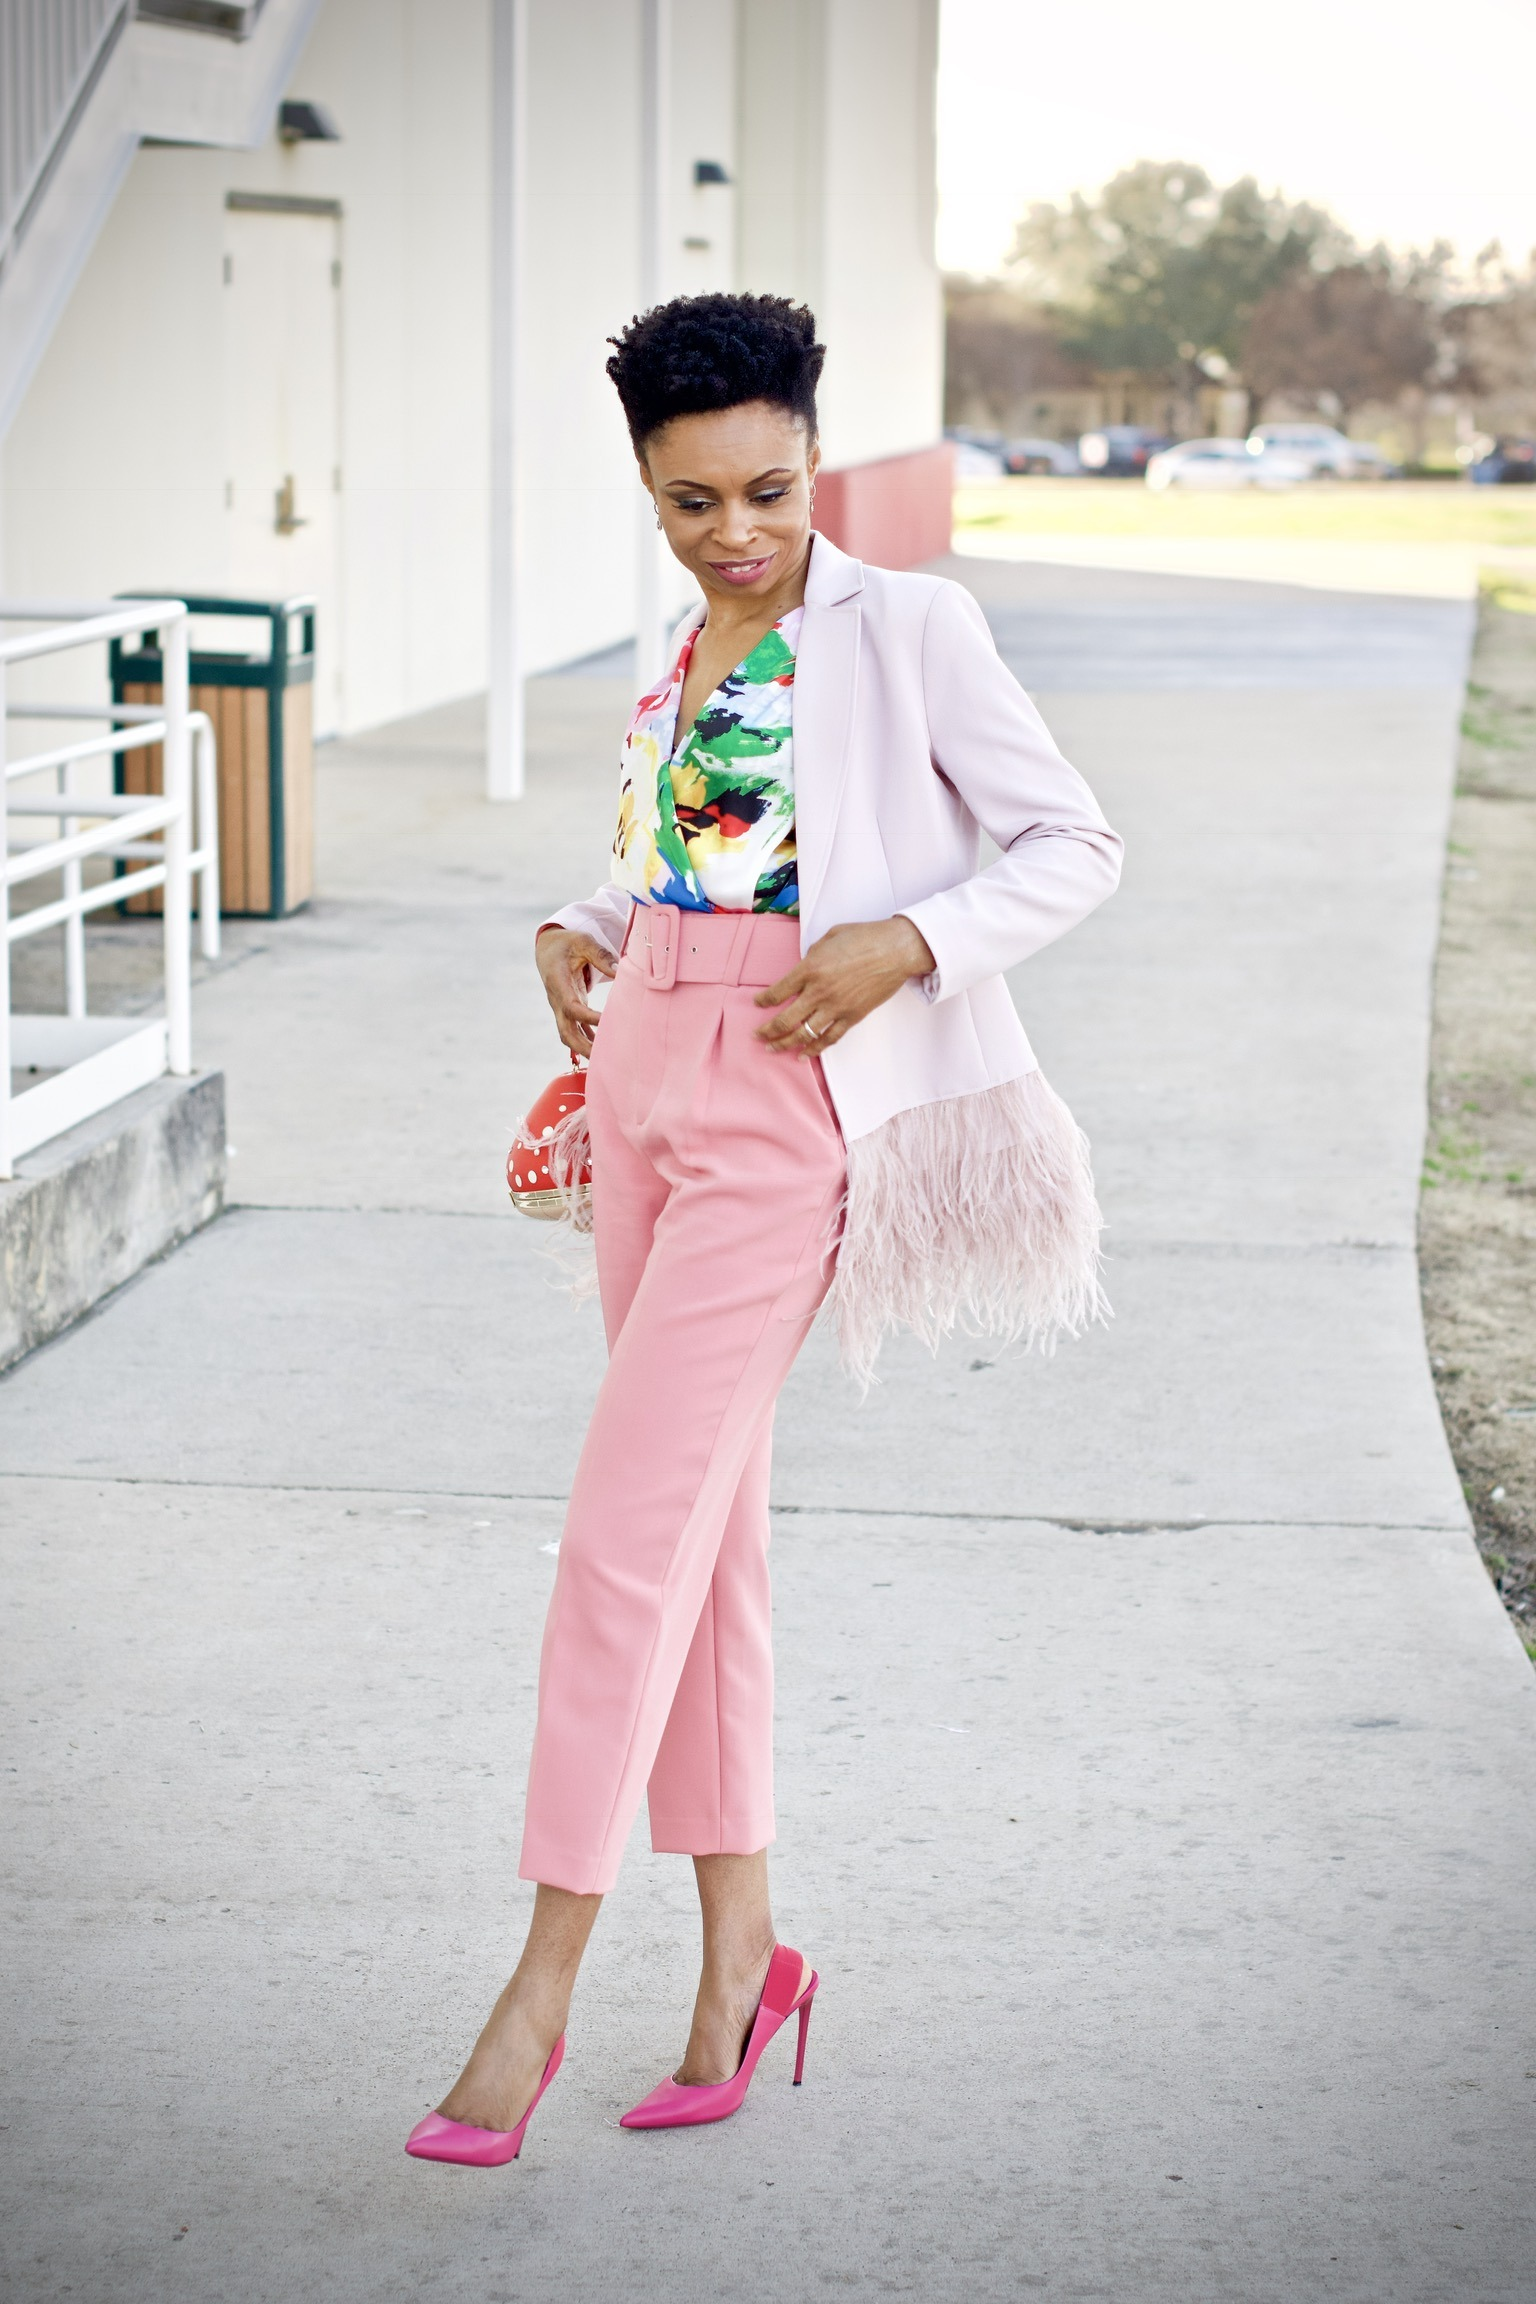 Pastels, florals, and a pop of color for spring